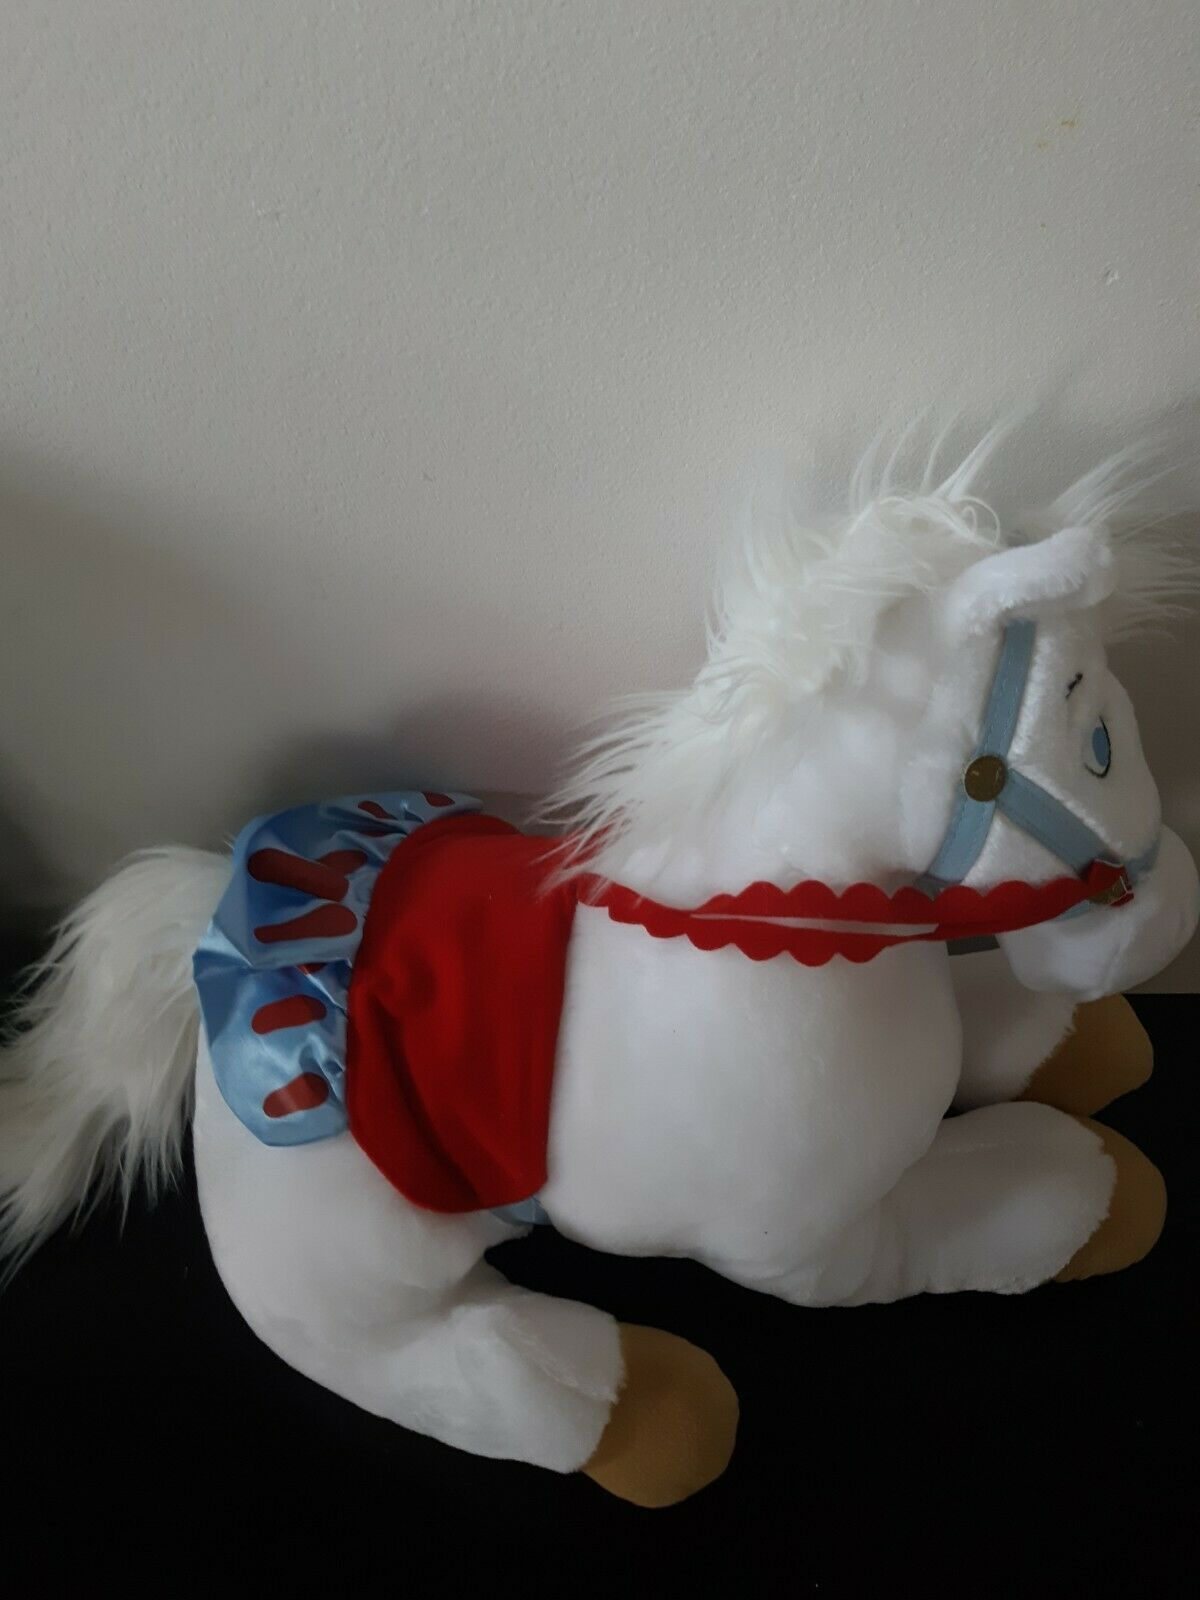 Disney Store Exclusive Princess Ponies Snow White Princess White Plush Stuffed